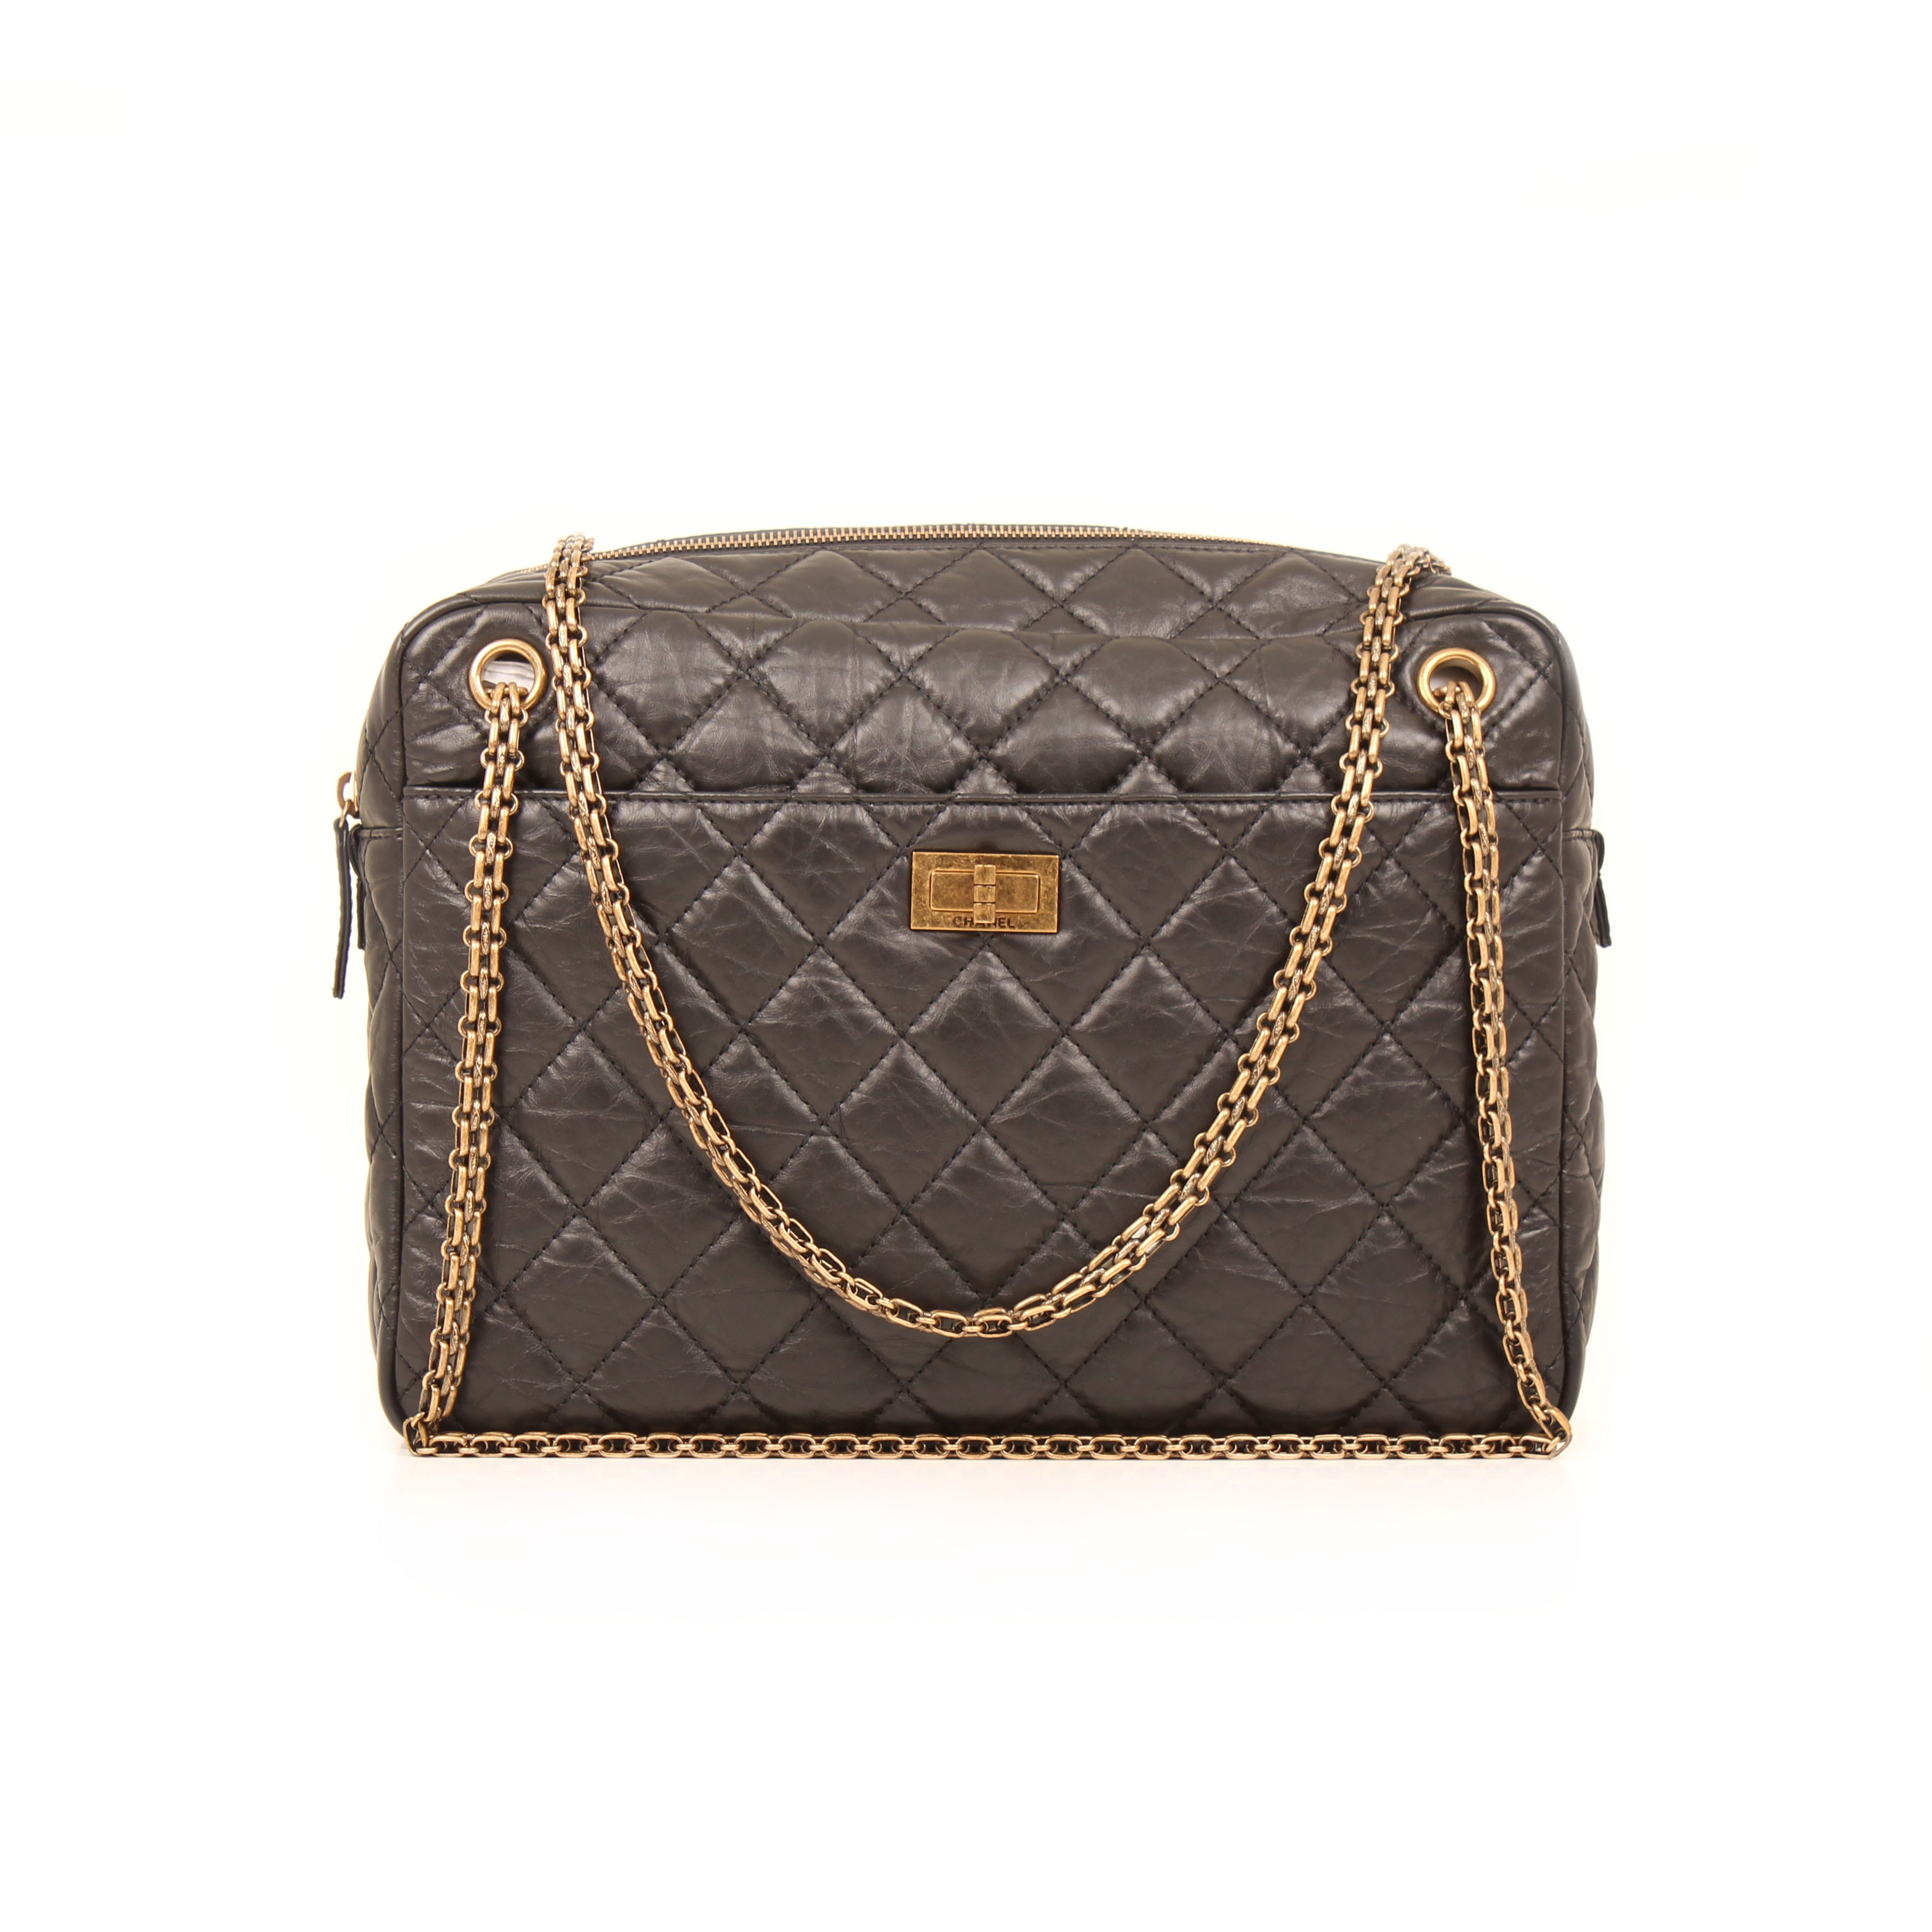 75e1b46bc864 chanel camera bag jumbo reissue aged leather black general. Imagen ...